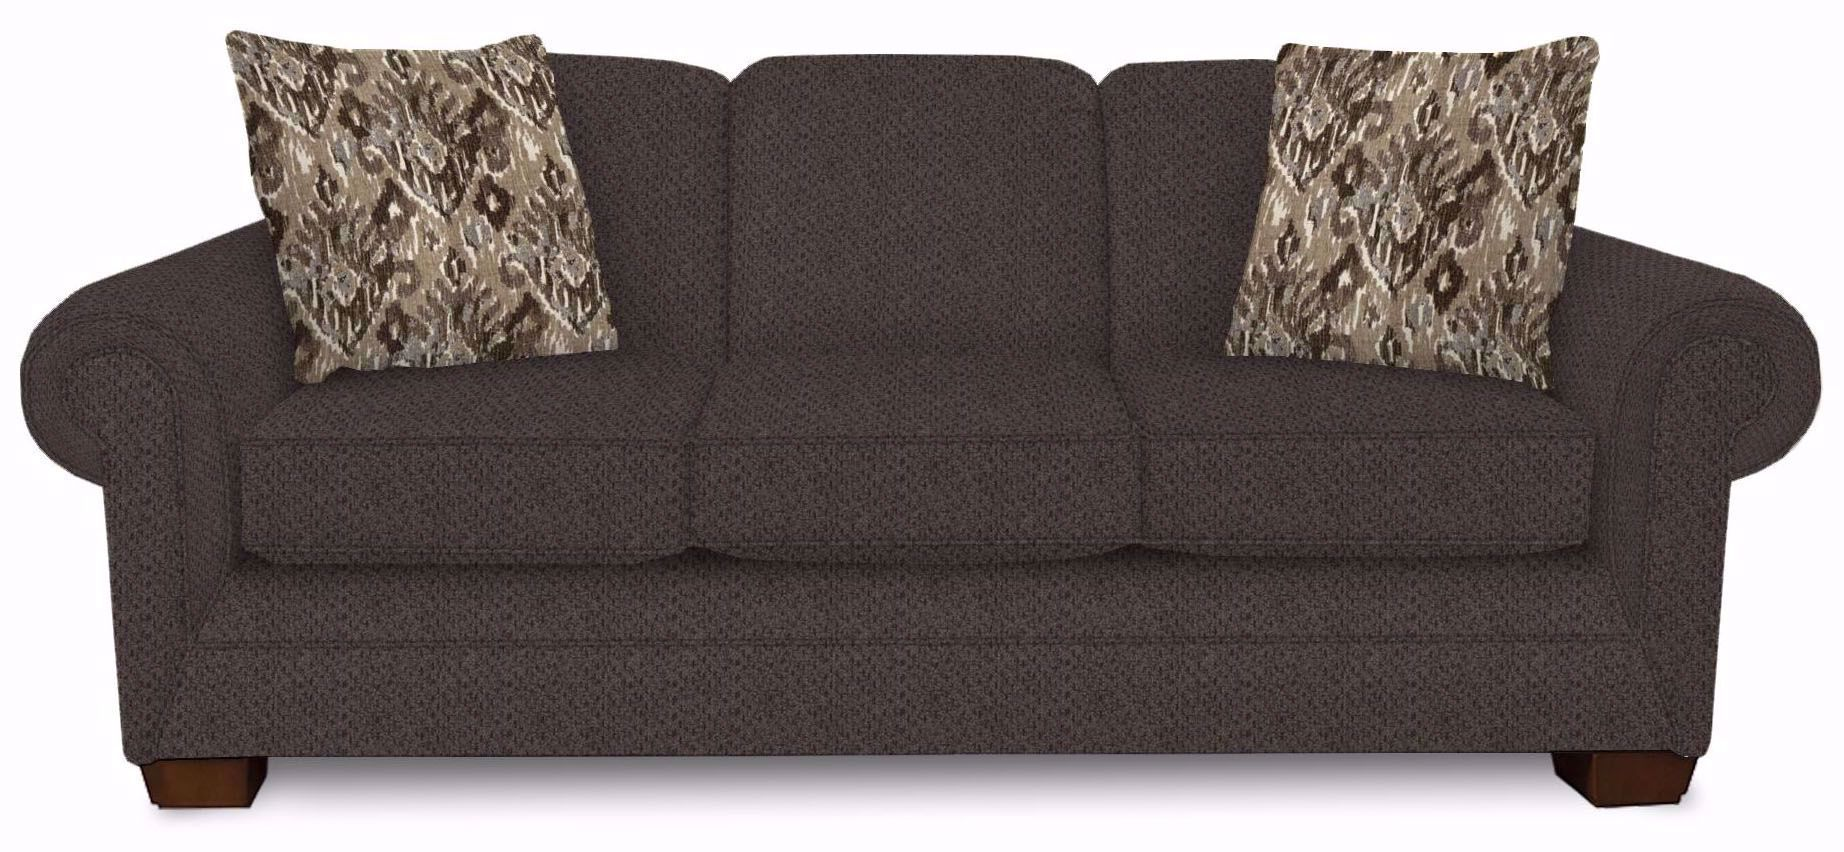 Picture of Wagga Wagga Otter Sofa